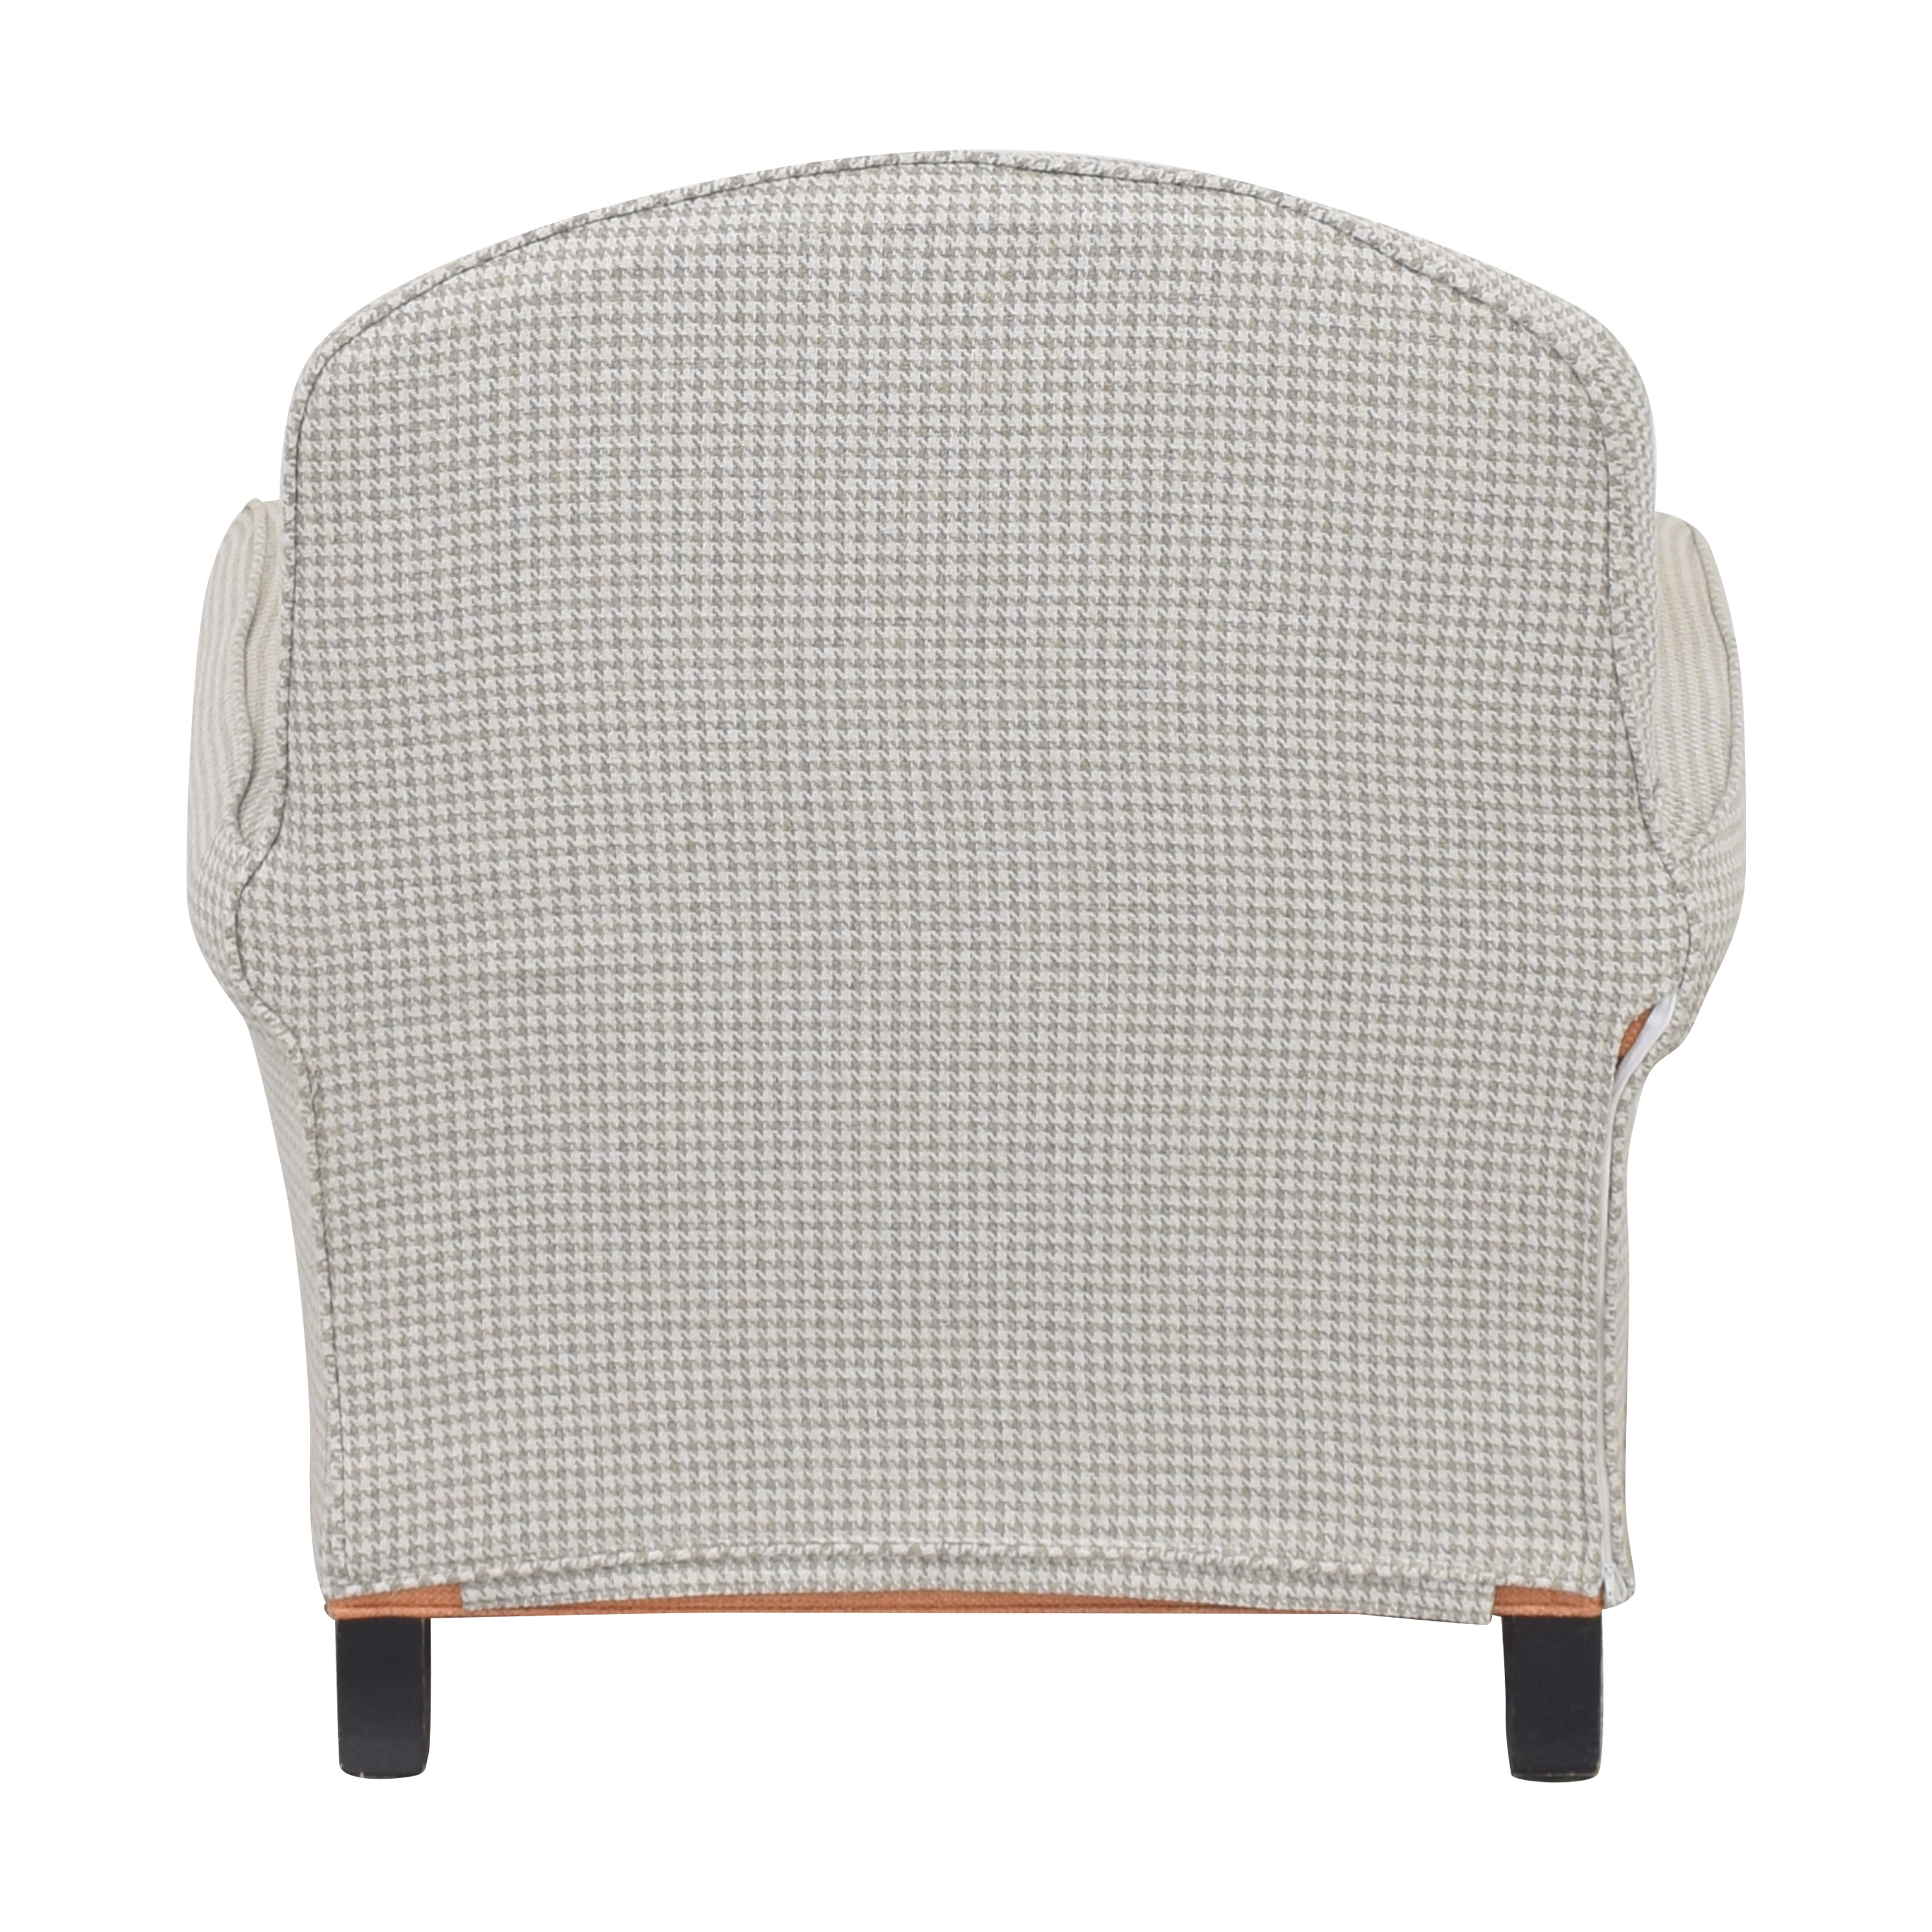 buy Ethan Allen Slipcovered Arm Chair Ethan Allen Accent Chairs